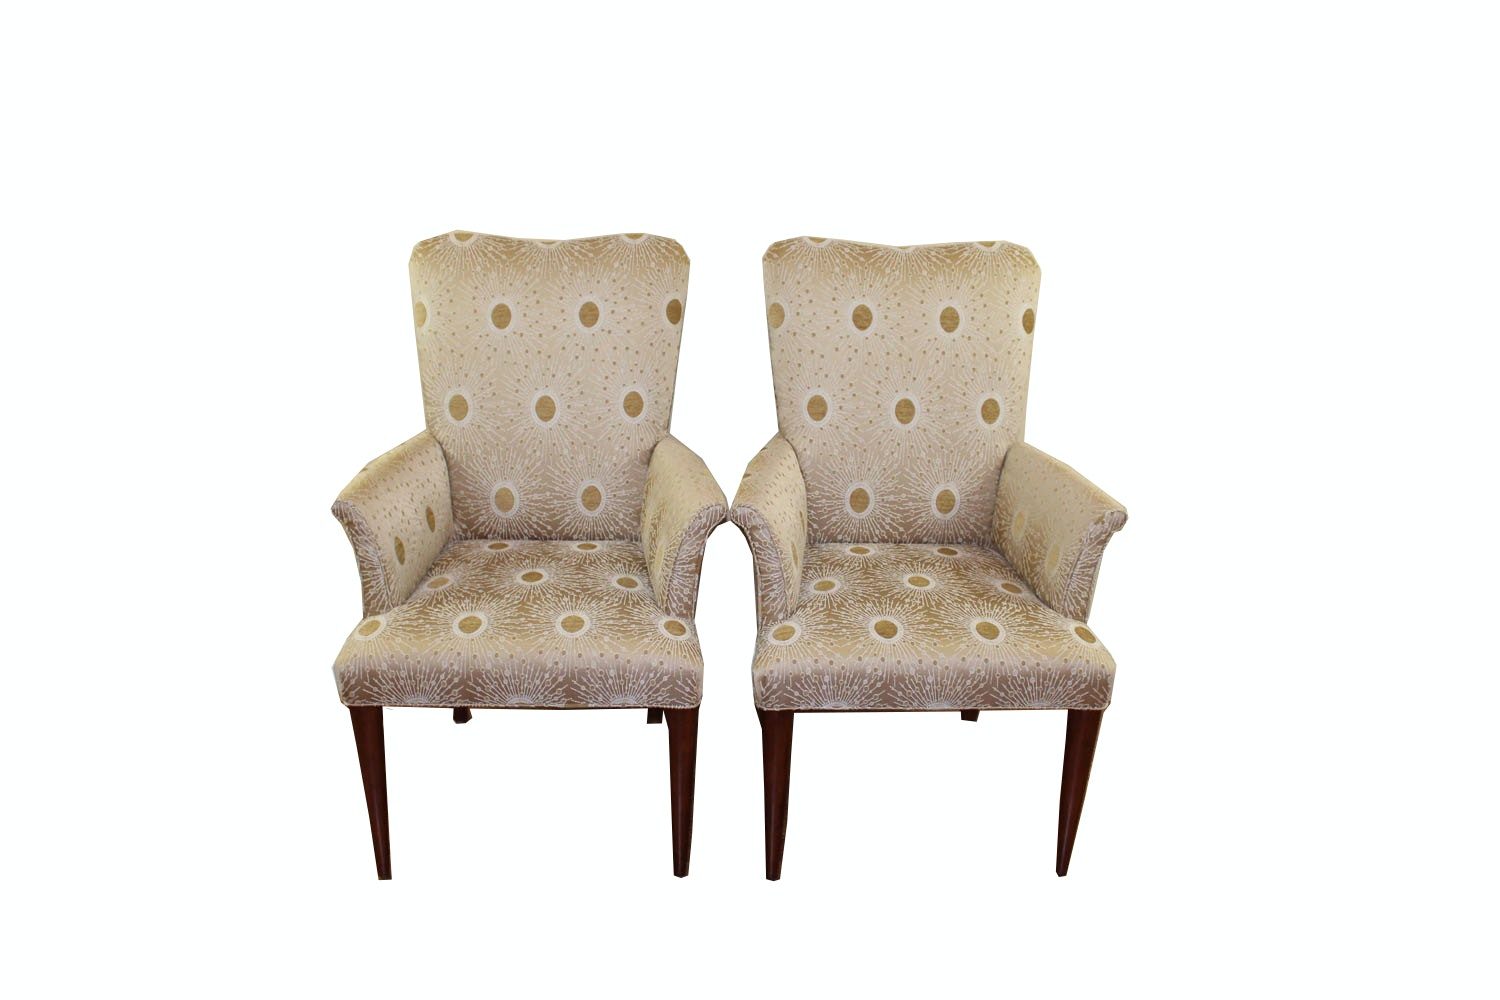 Pair of Classics by Swaim Captainu0027s Chairs ...  sc 1 st  EBTH.com & Pair of Classics by Swaim Captainu0027s Chairs : EBTH